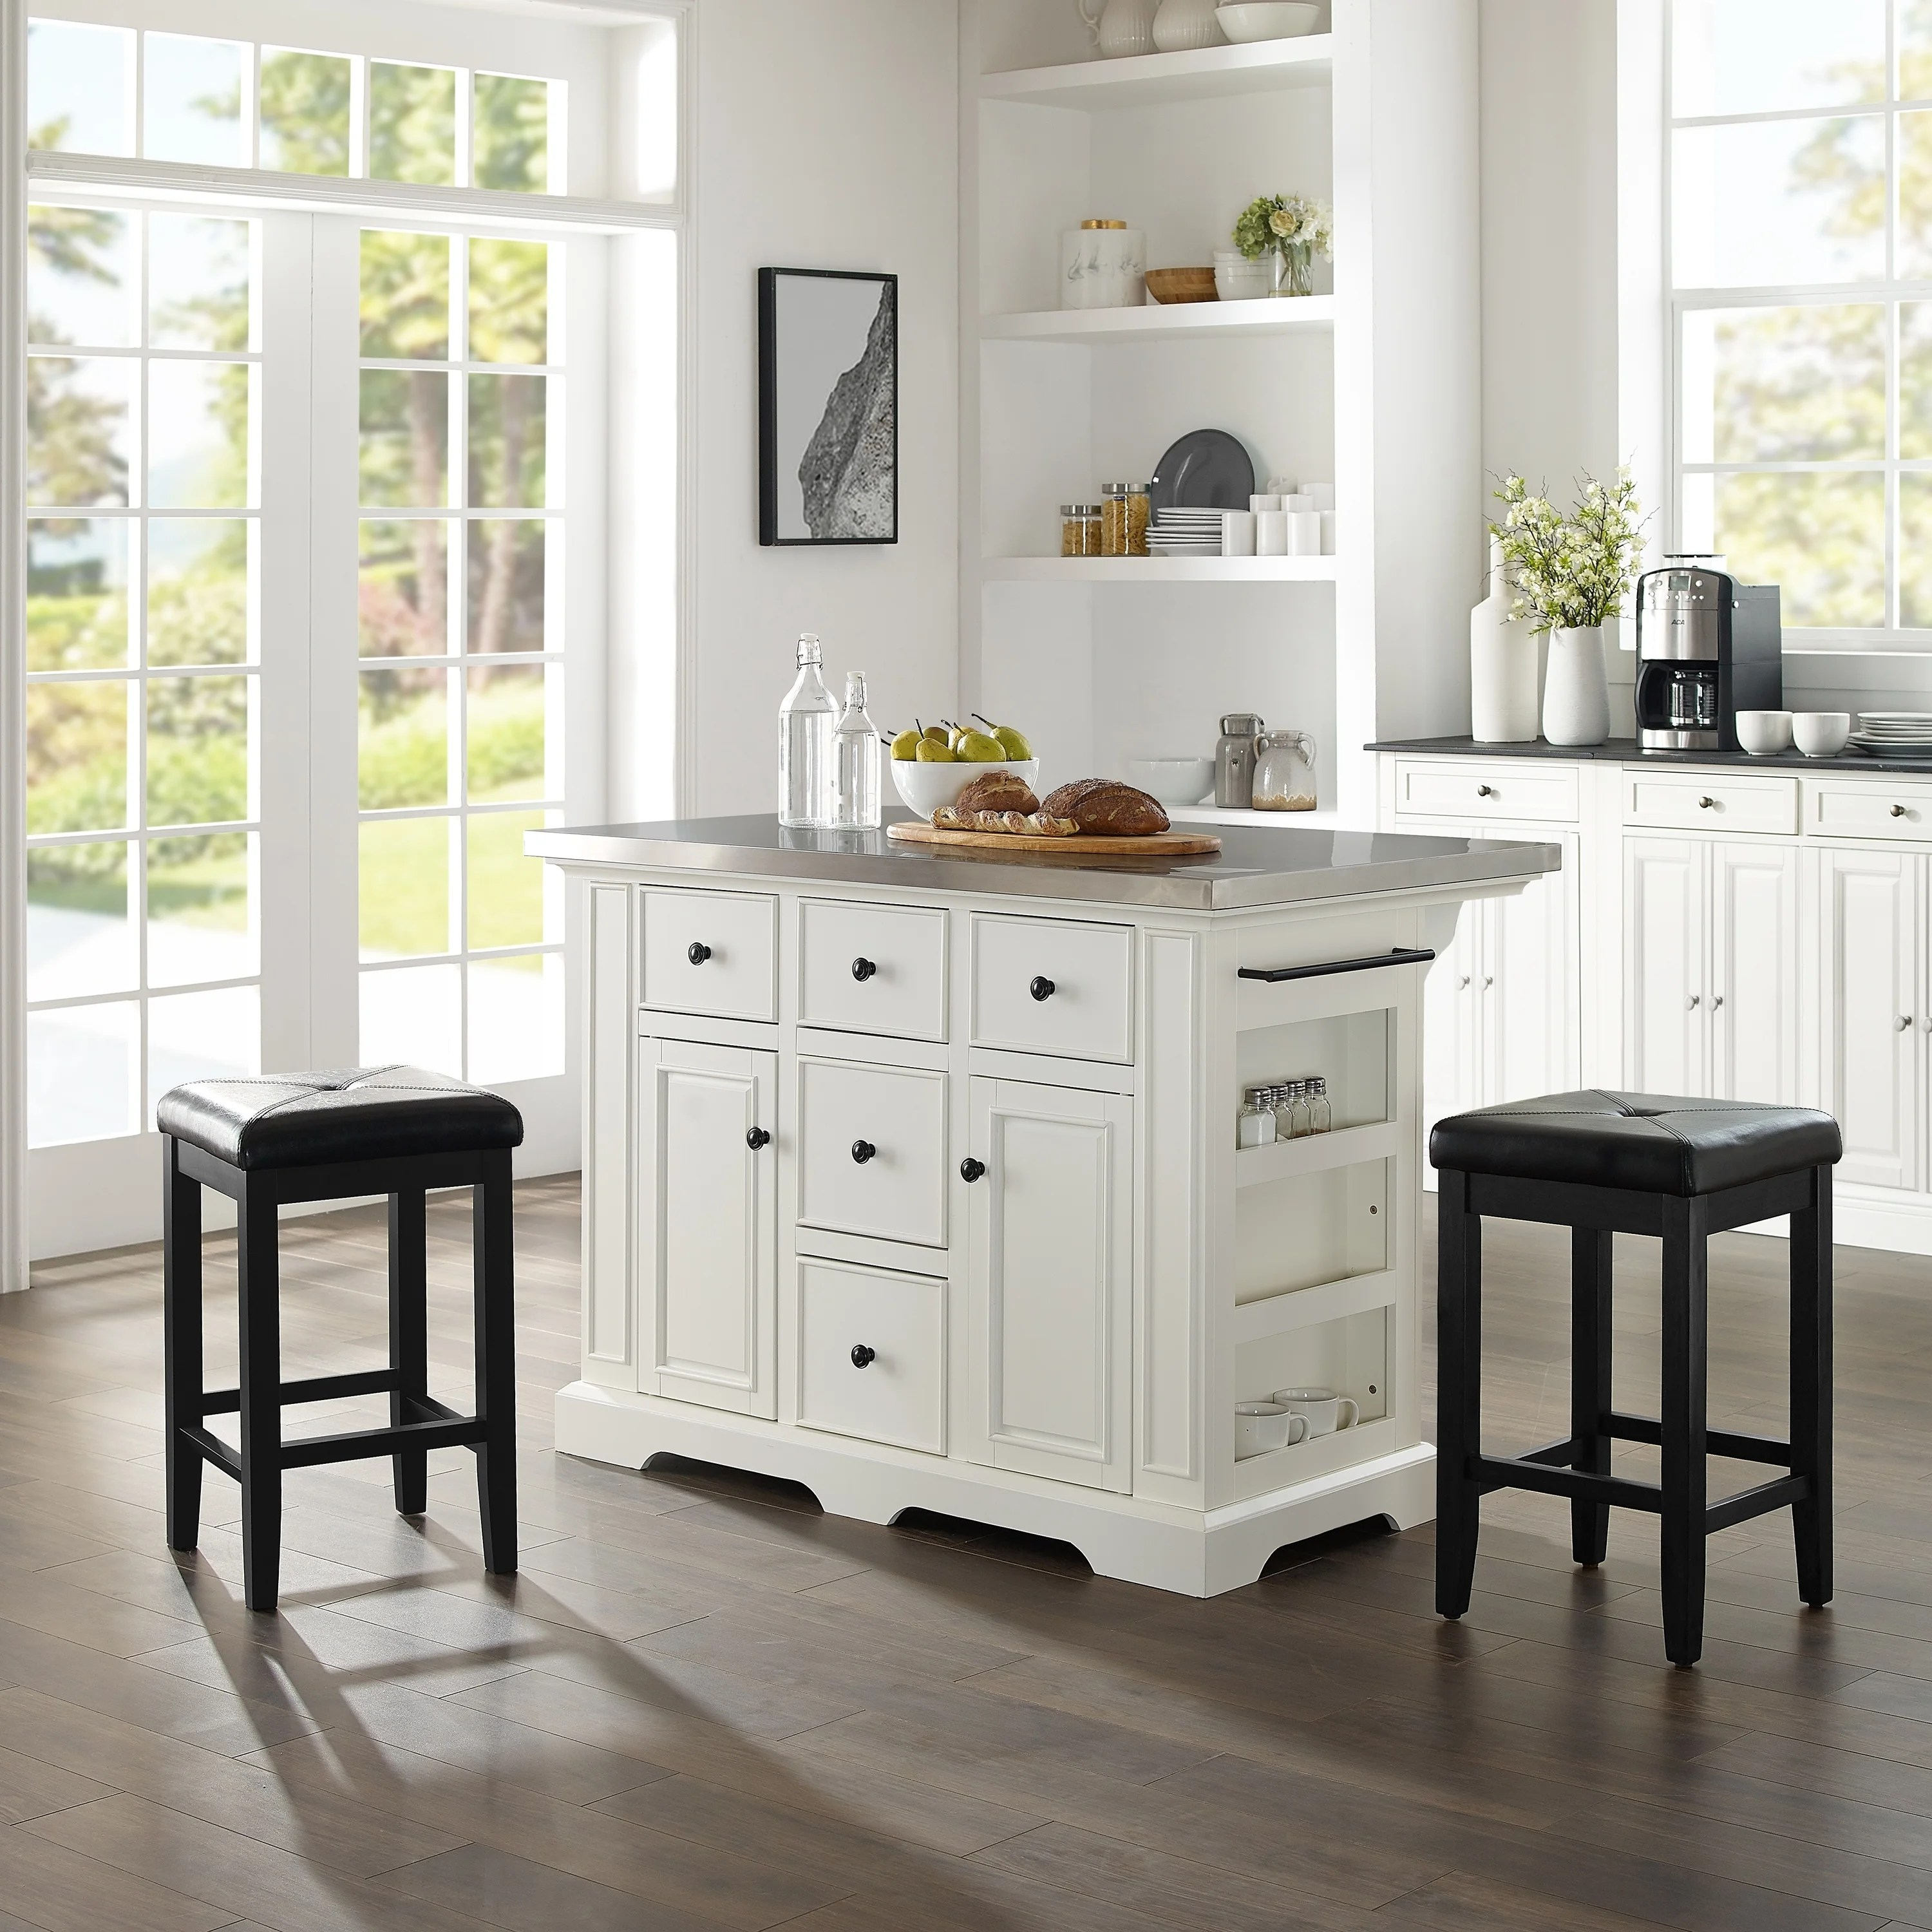 Buy With Seating Kitchen Islands Online At Overstock Our